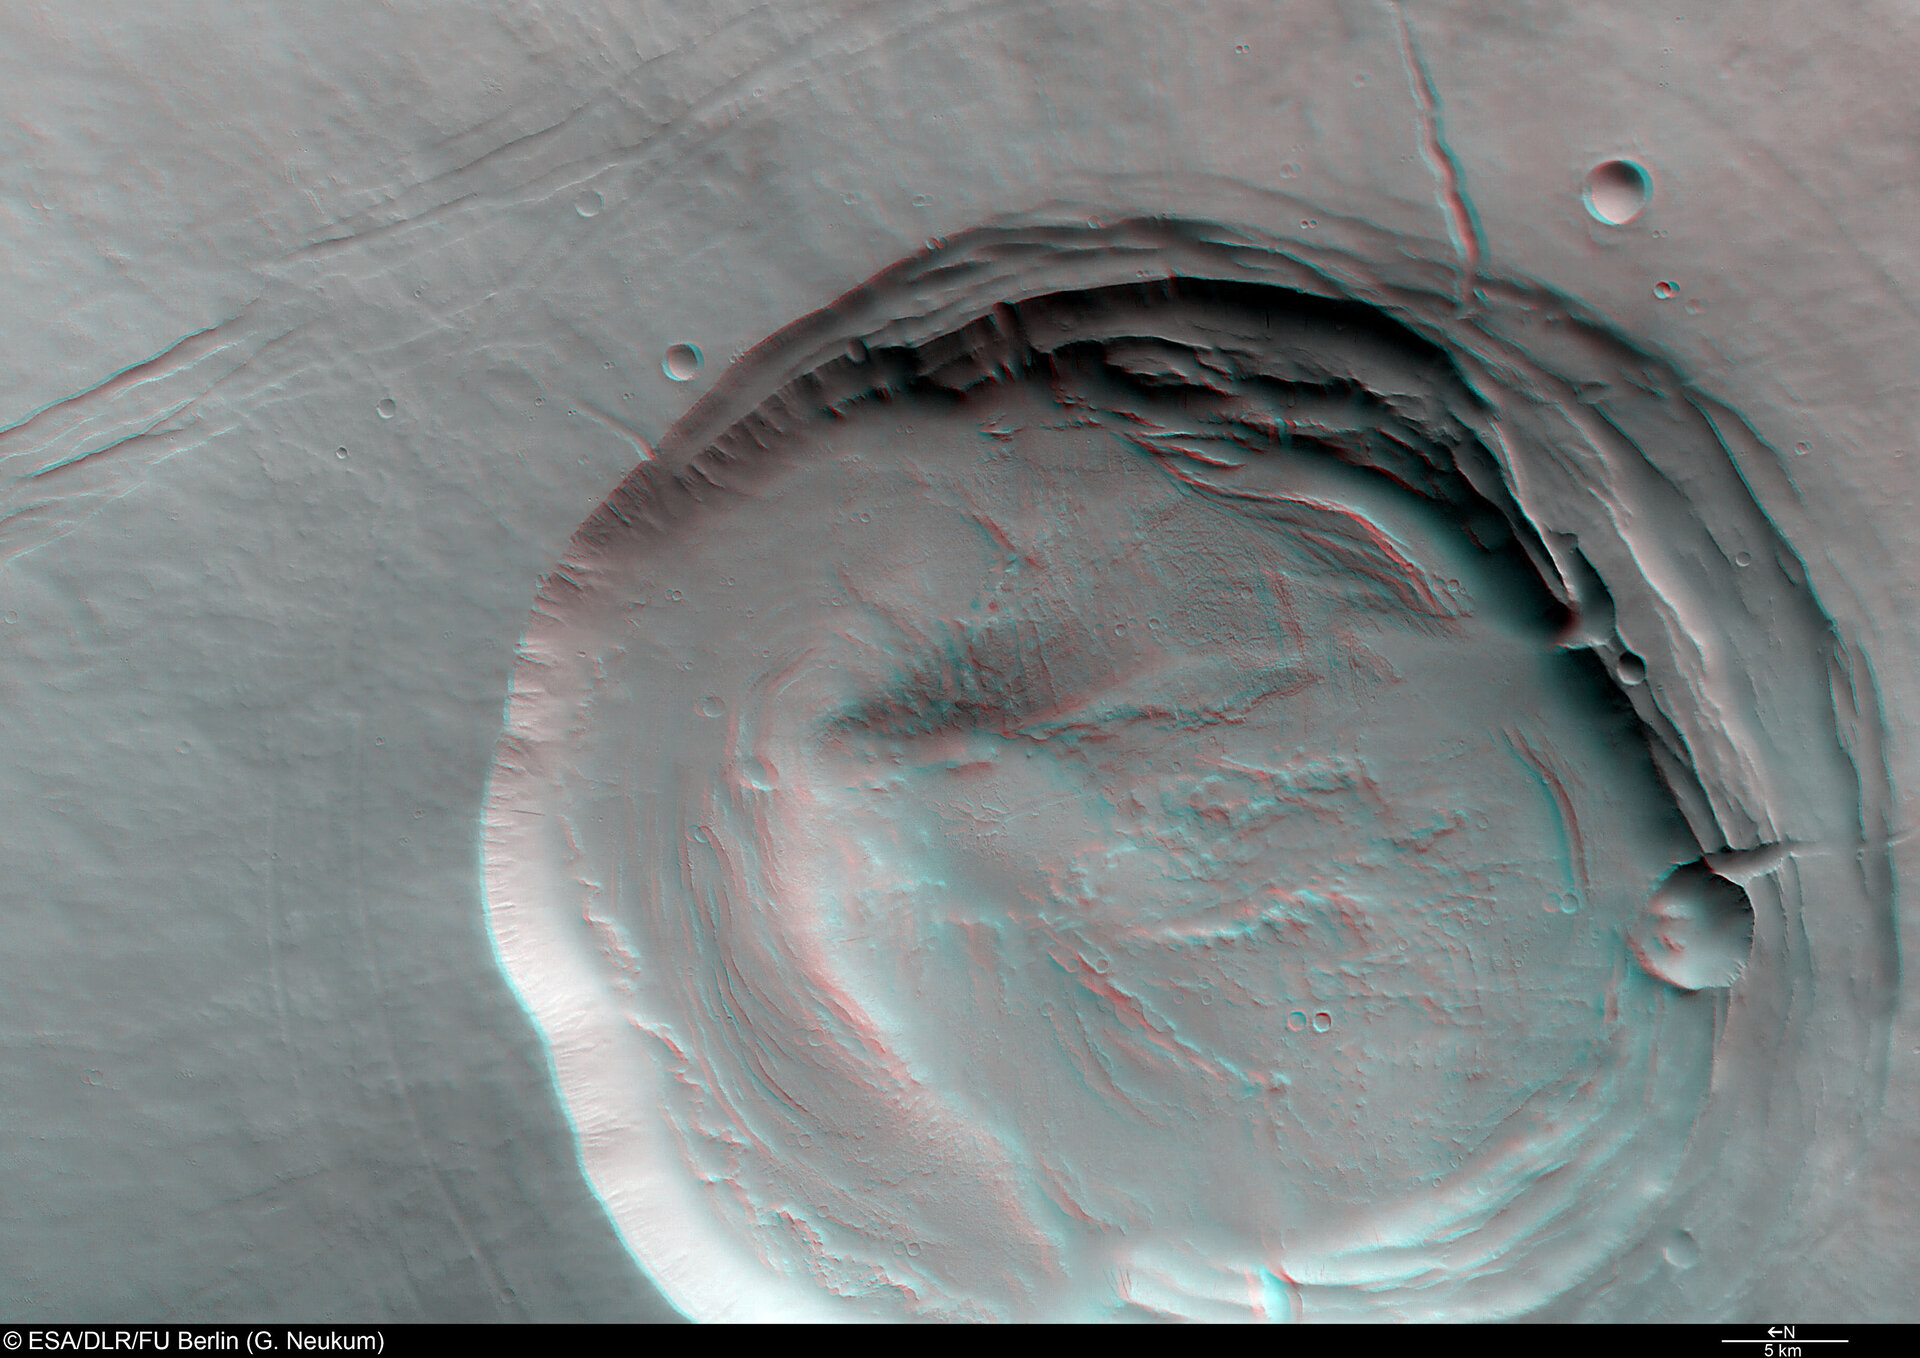 3D anaglyph view of Biblis Patera